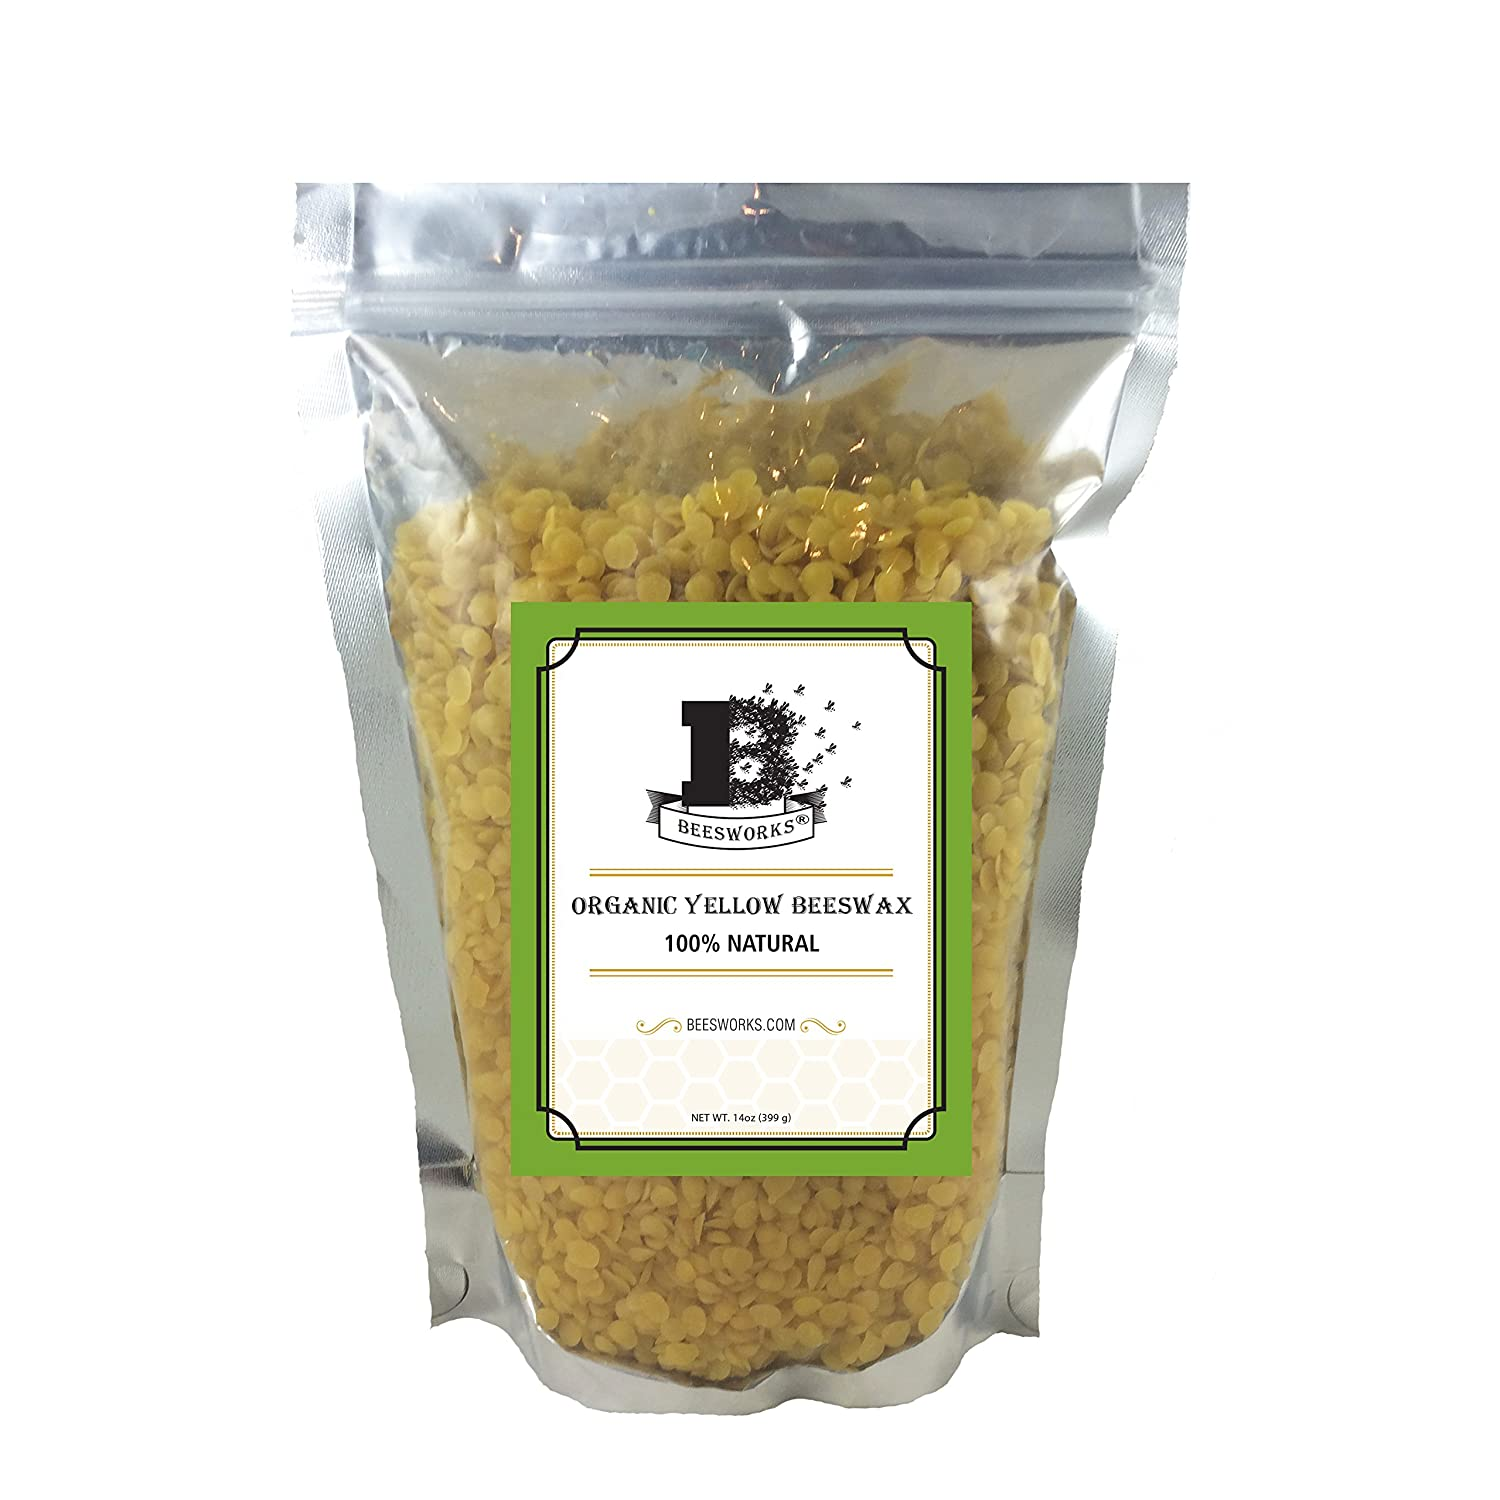 Organic Yellow Beeswax Pellets by Your Natural Planet (Now Beesworks®) - 14oz - Tested and Certified 100% Organic